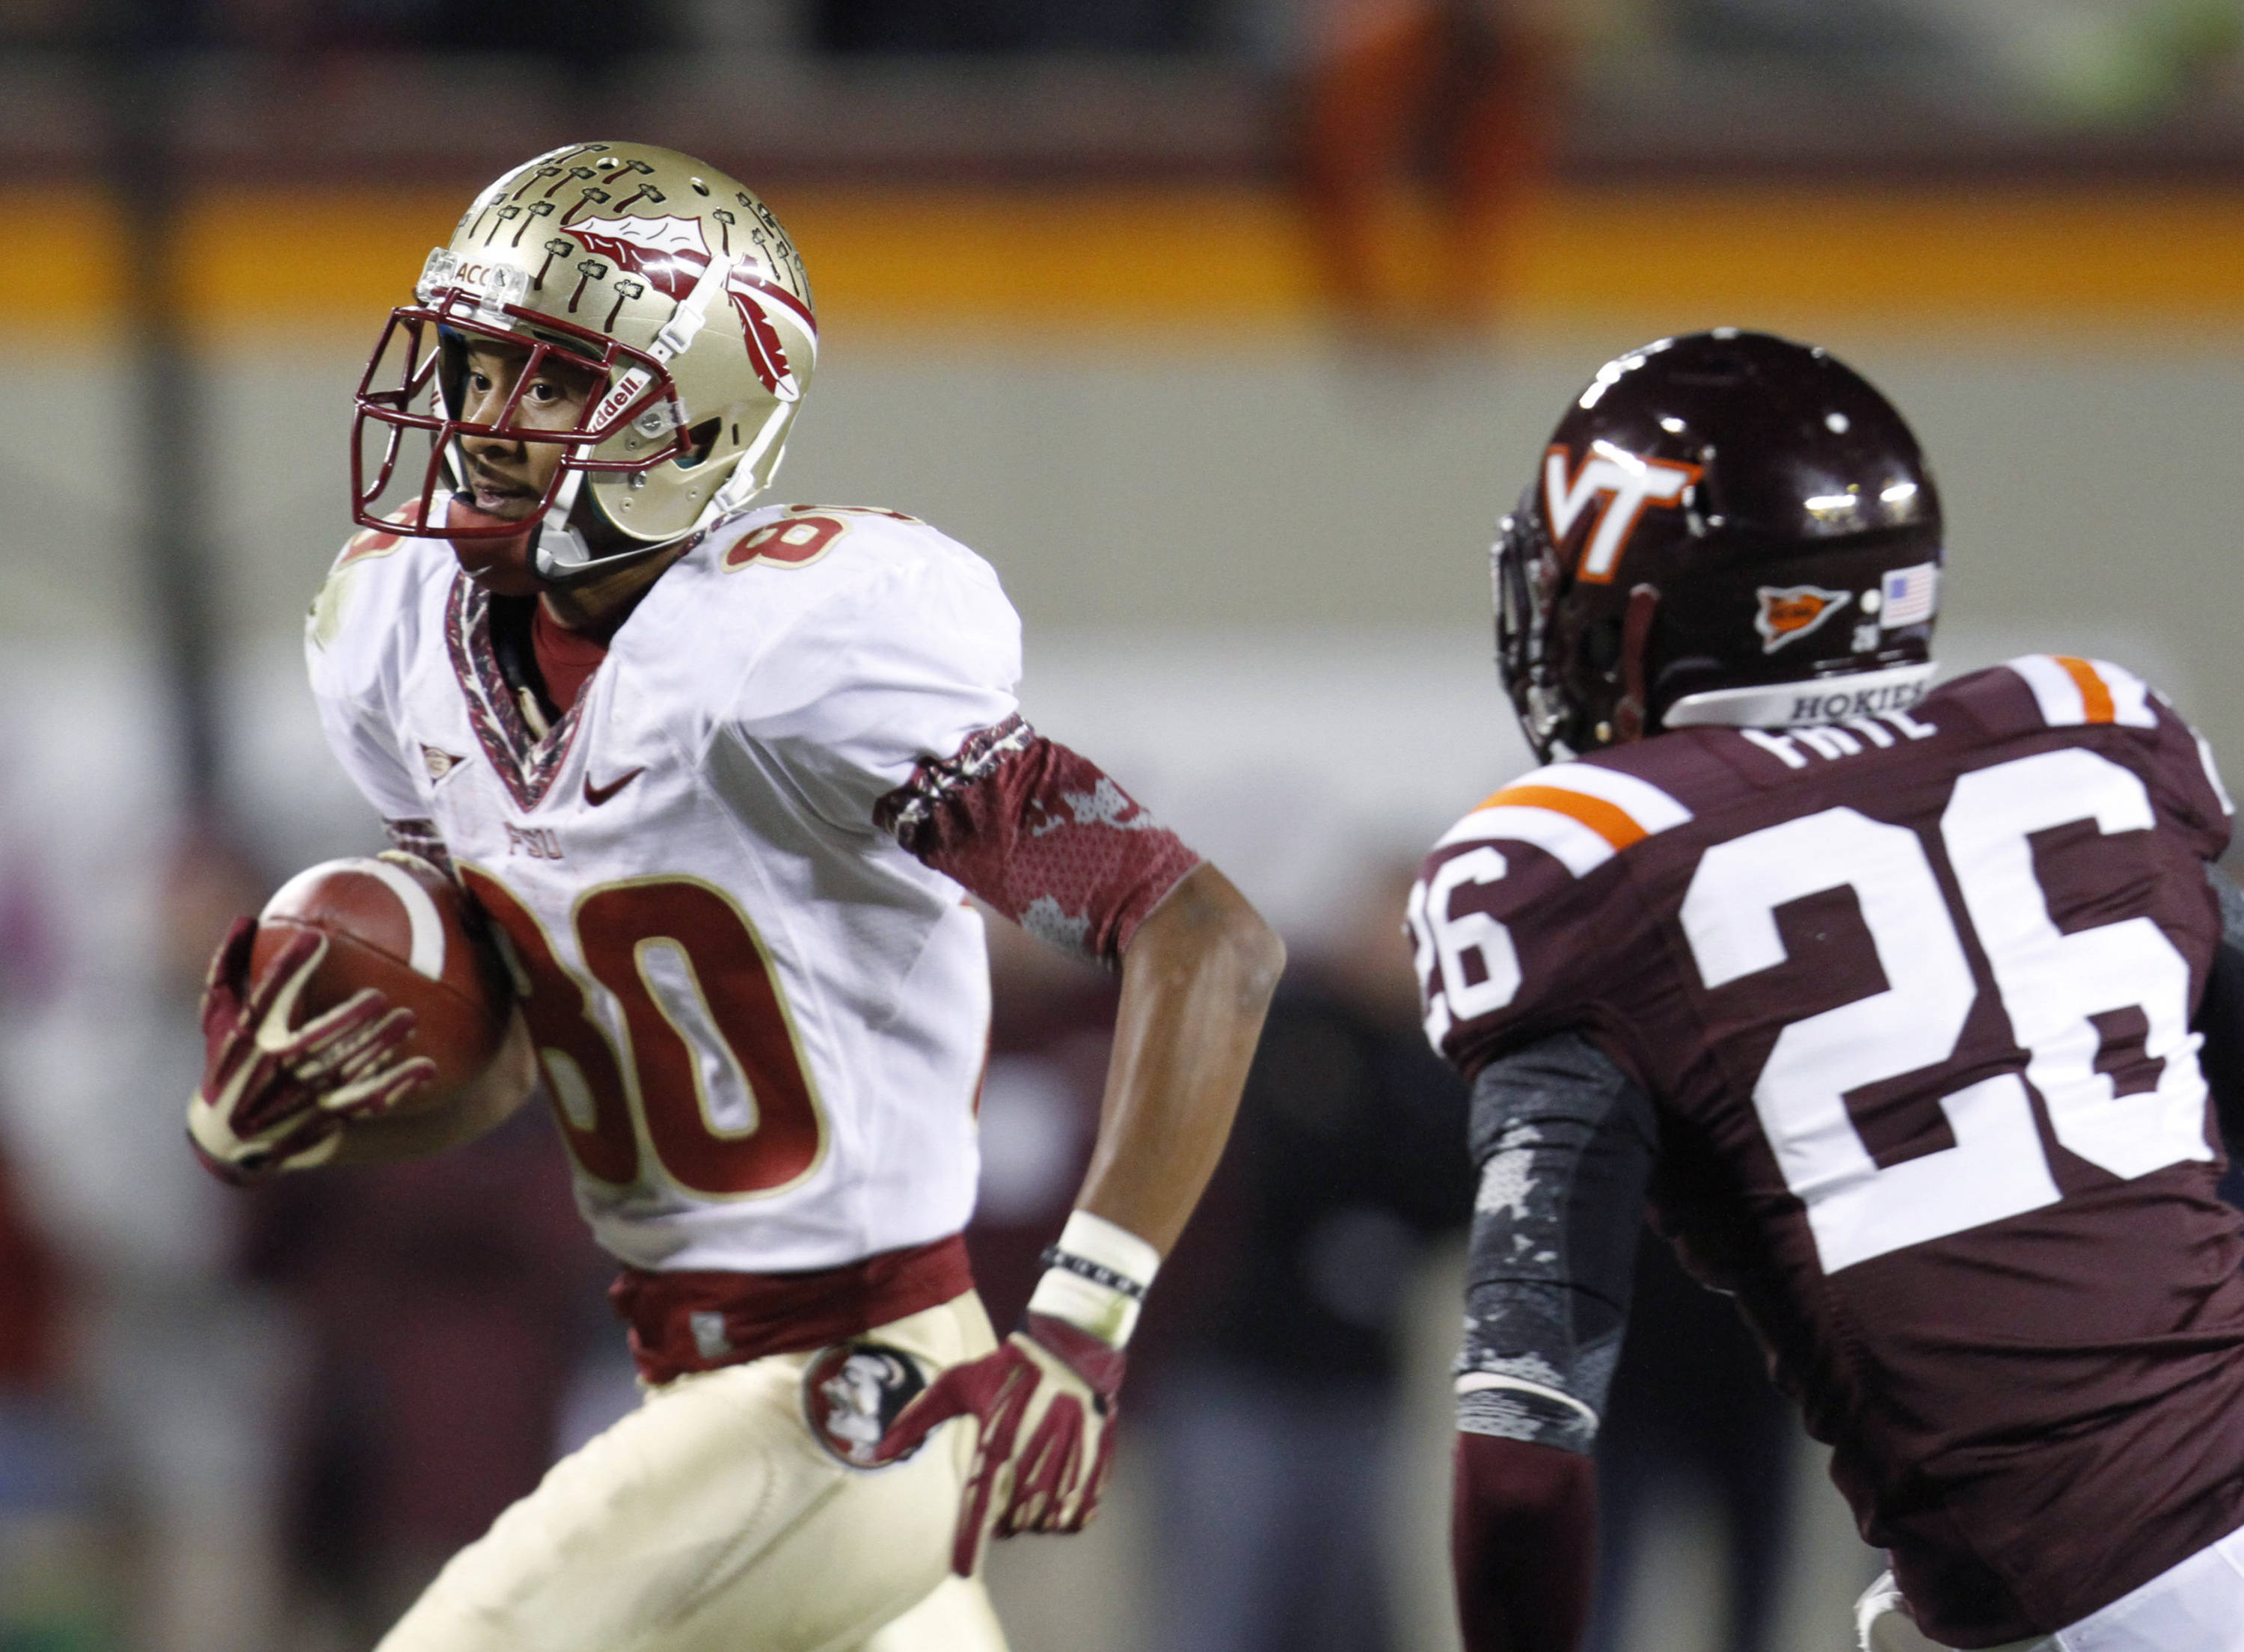 Florida State wide receiver Rashad Greene (80) heads to the end zone in front of Virginia Tech safety Desmond Frye (26) for the go-ahead touchdown. (AP Photo/Steve Helber)